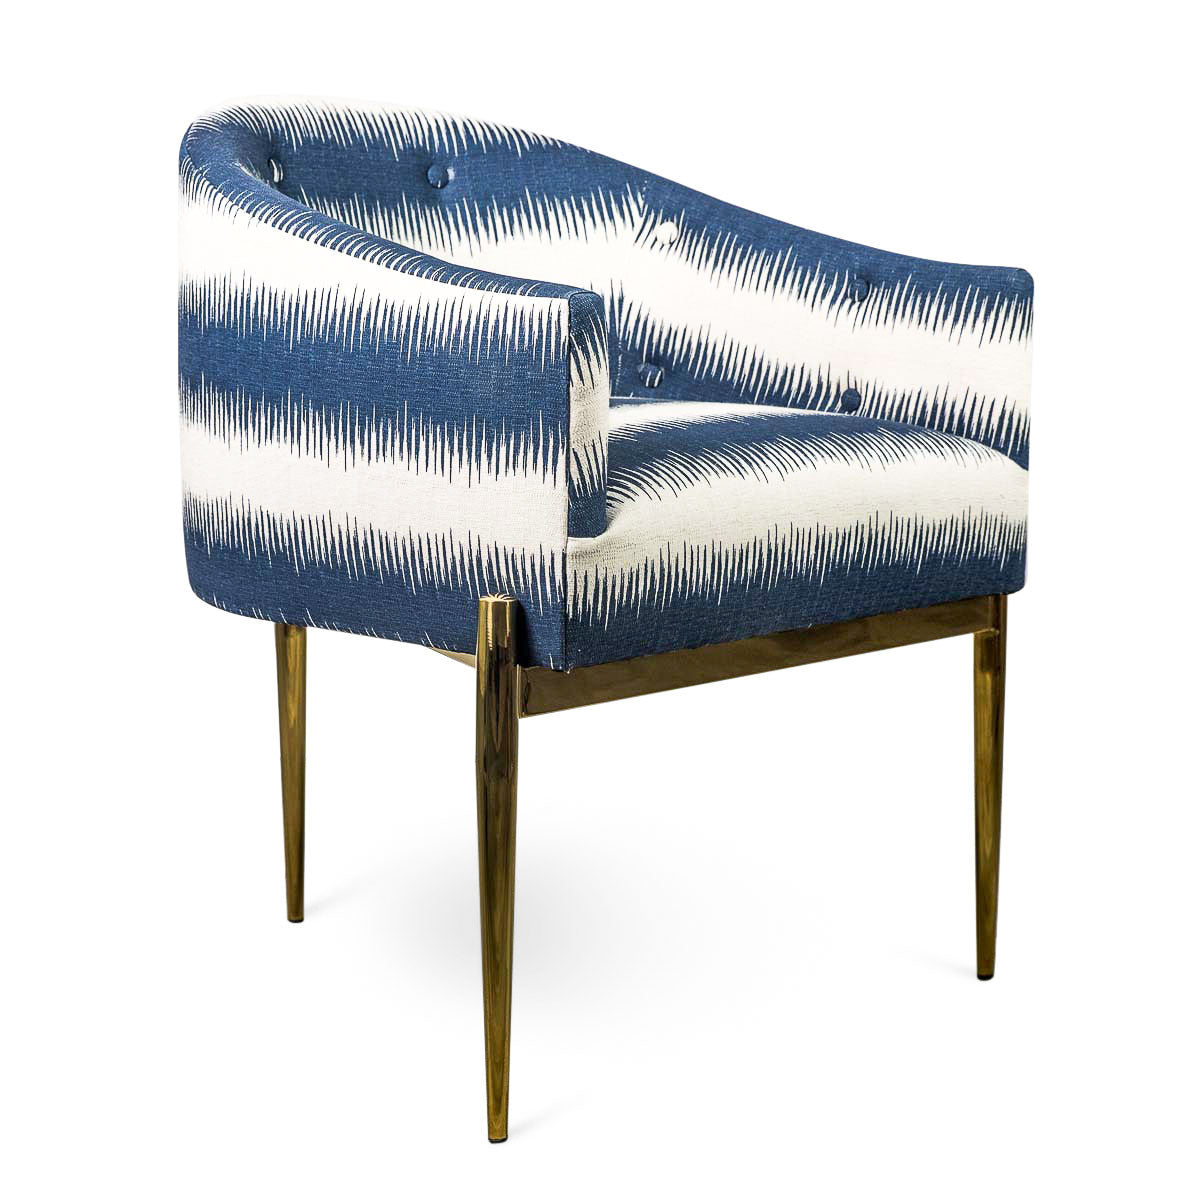 Top Art Deco Dining Chair - Striped Ikat Wingback Chair - ModShop VK87